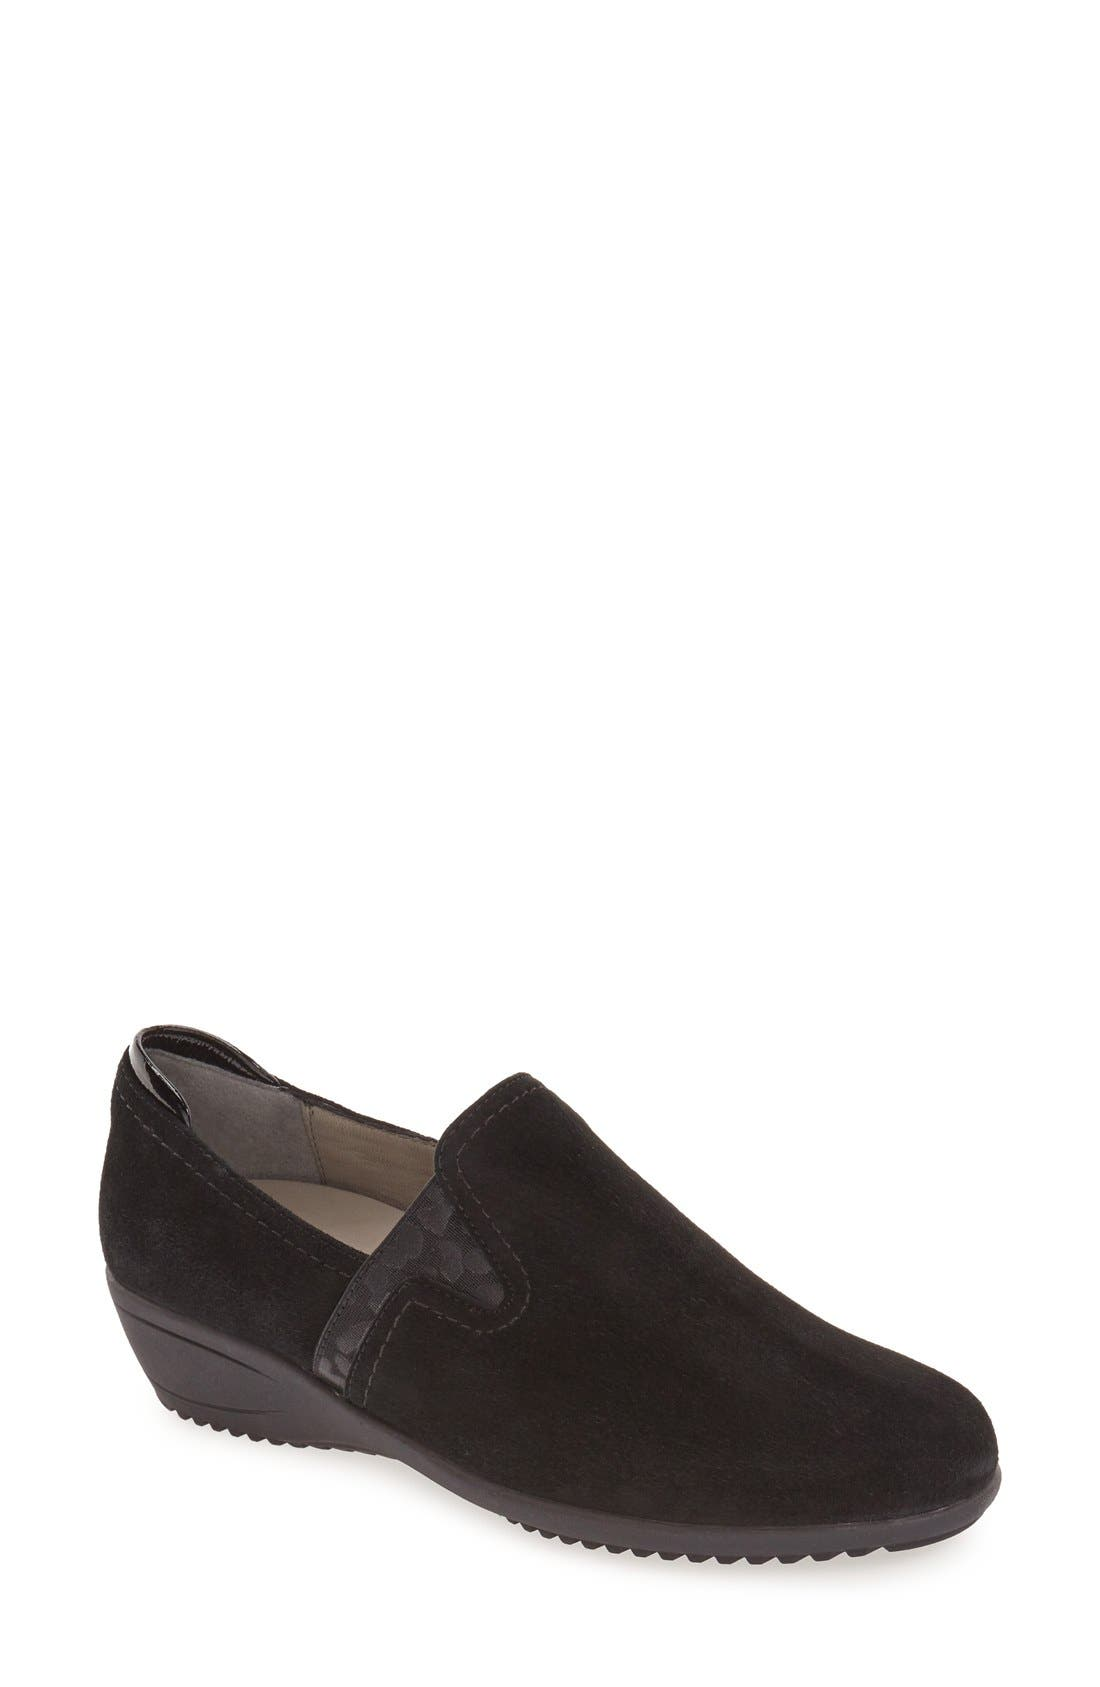 'Lilli' Wedge Loafer,                             Main thumbnail 1, color,                             001